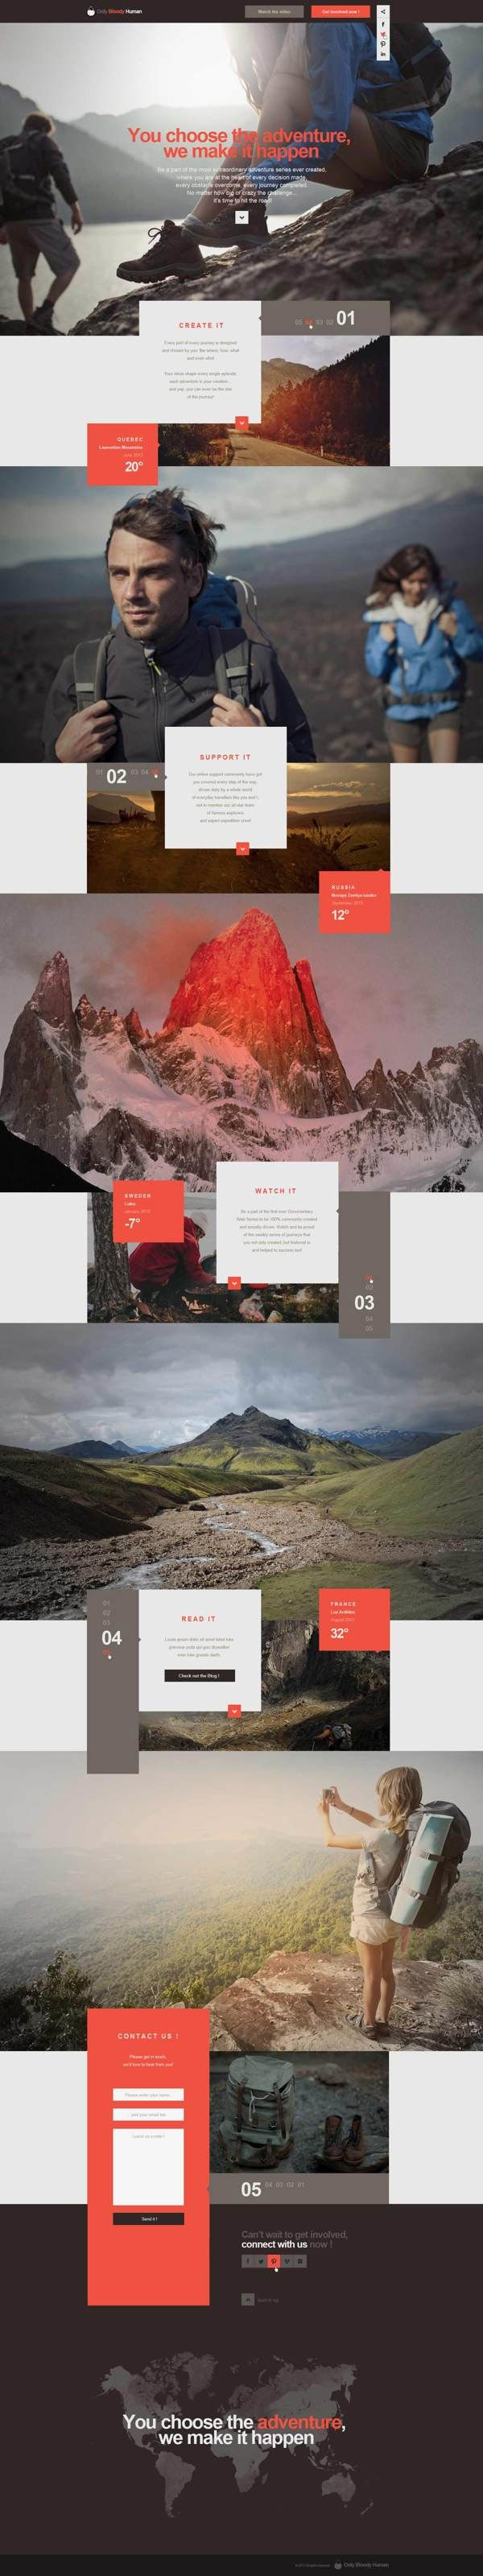 20 Website Concepts with Stunning Full Page Designs: OBH Landing Page Concept by Thomas Le Corre